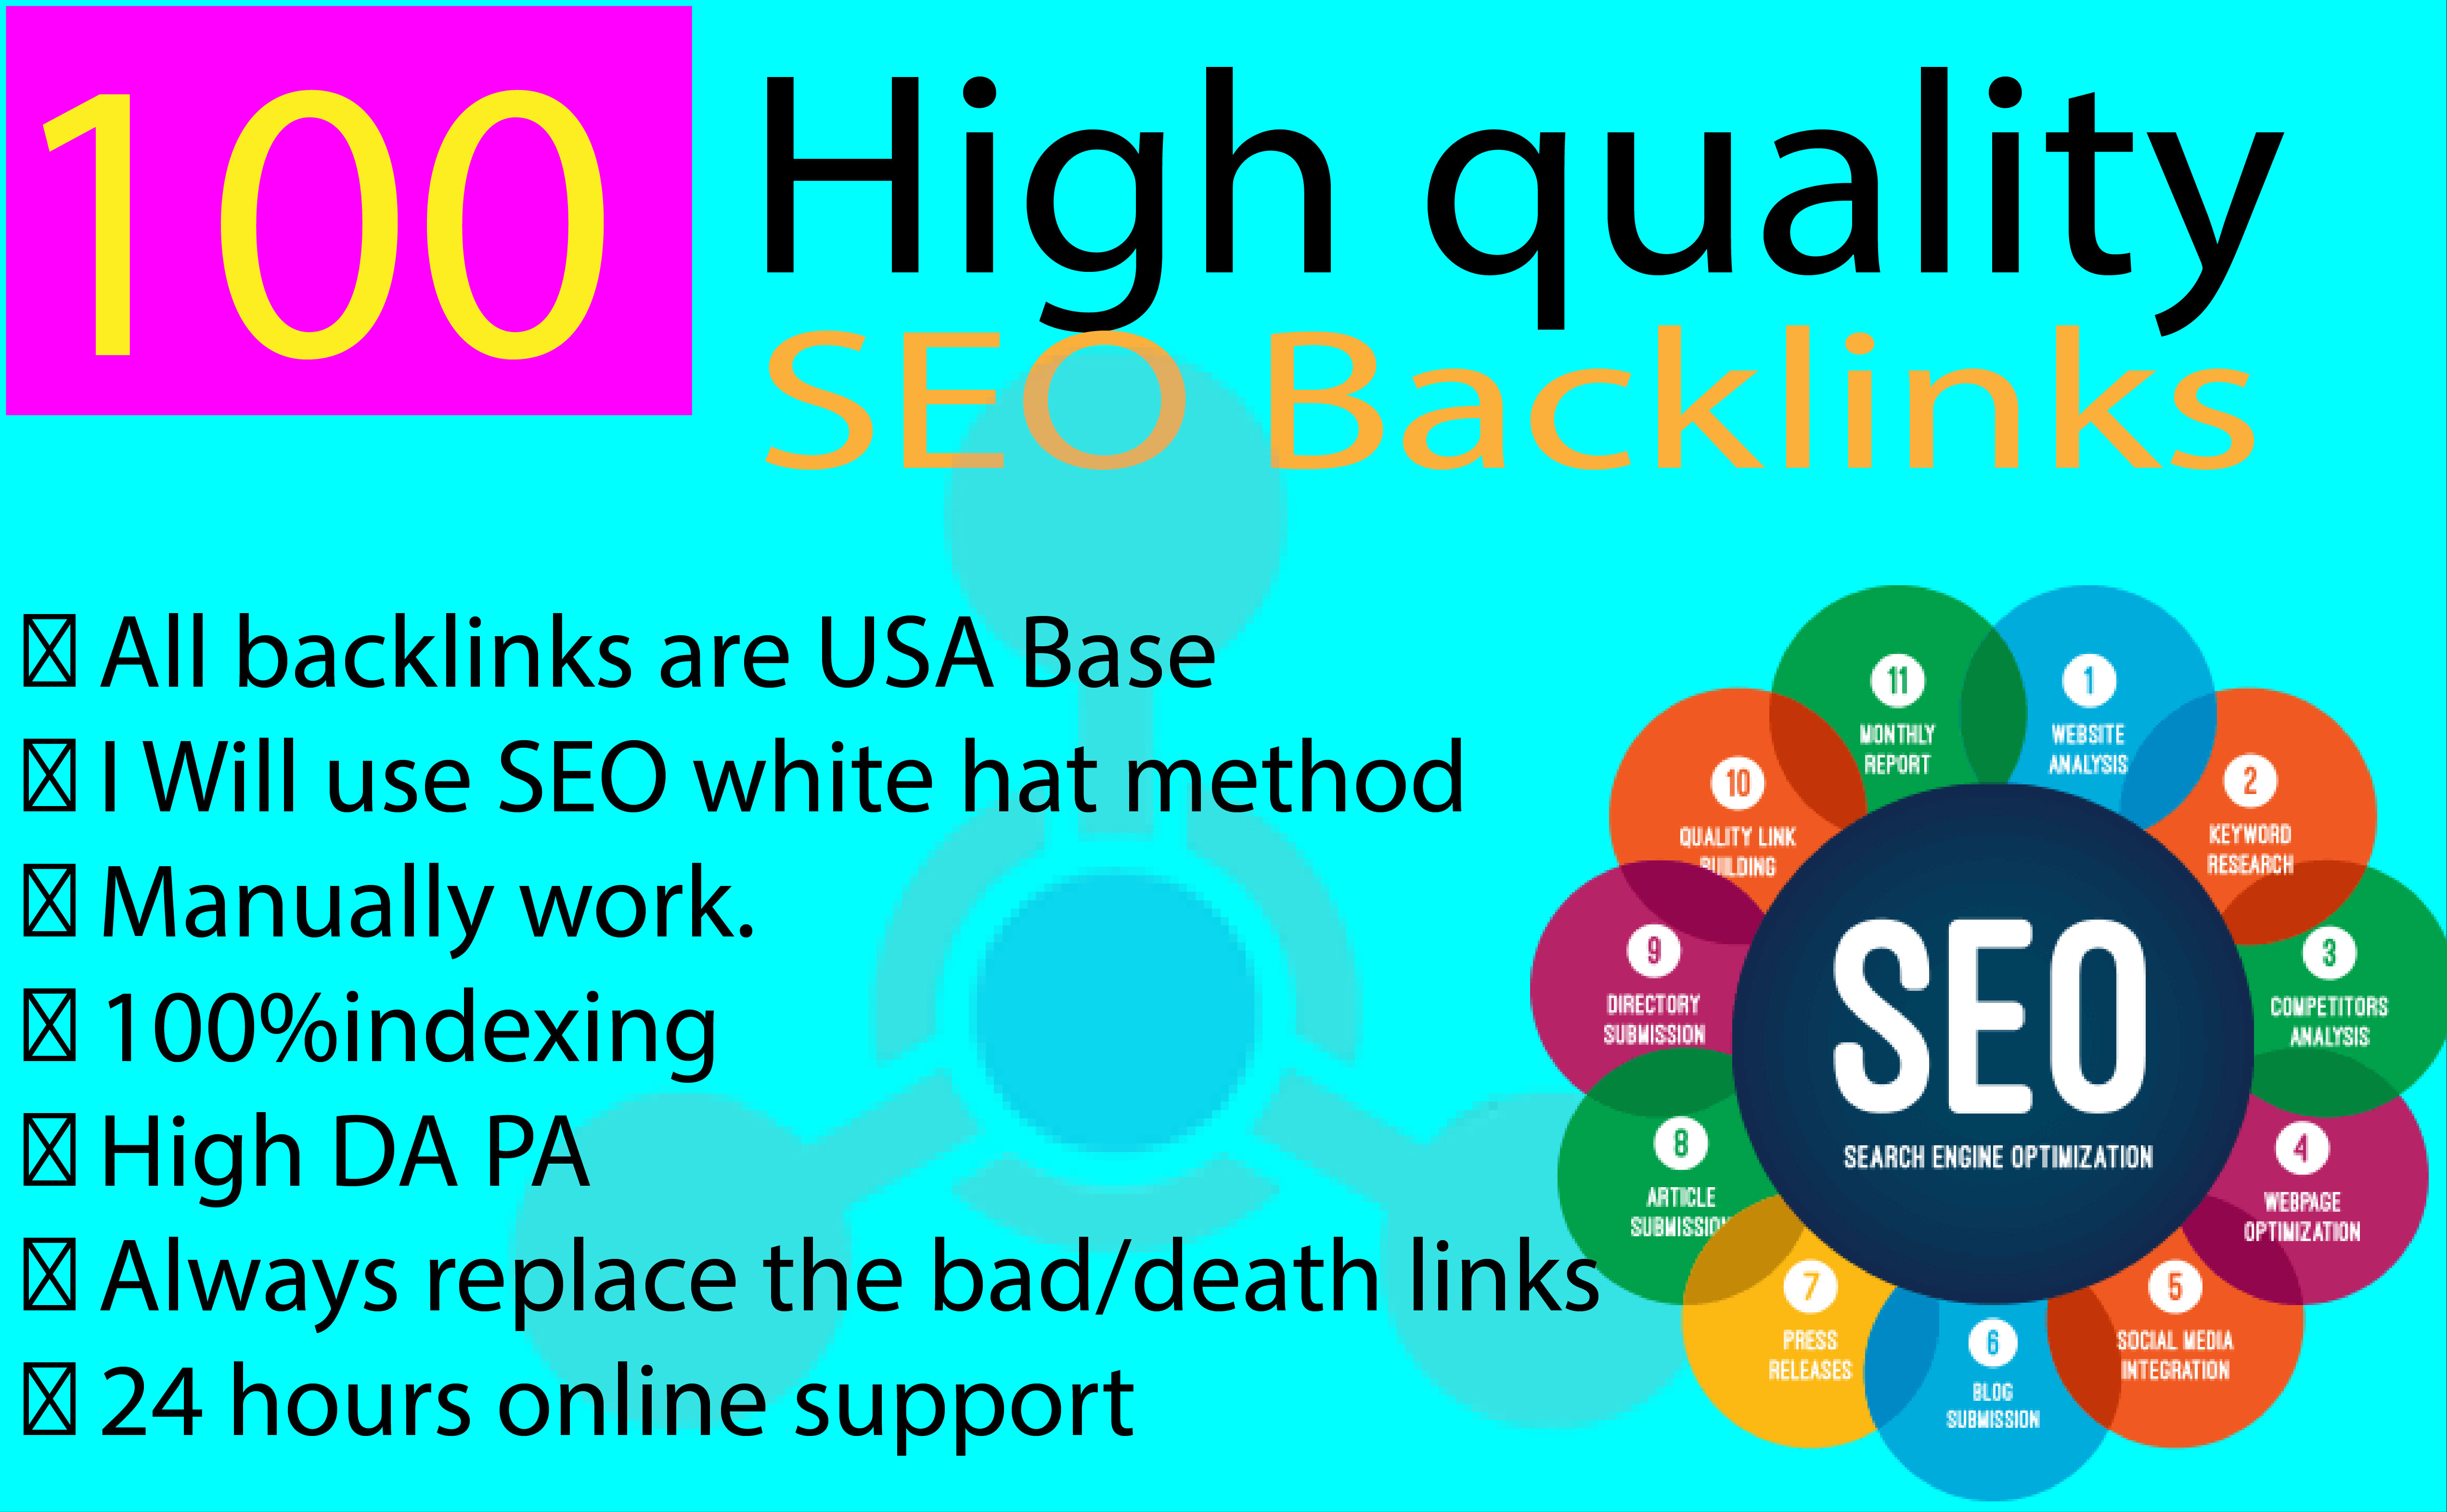 I will do top rank at google with 100 High quality backlinks